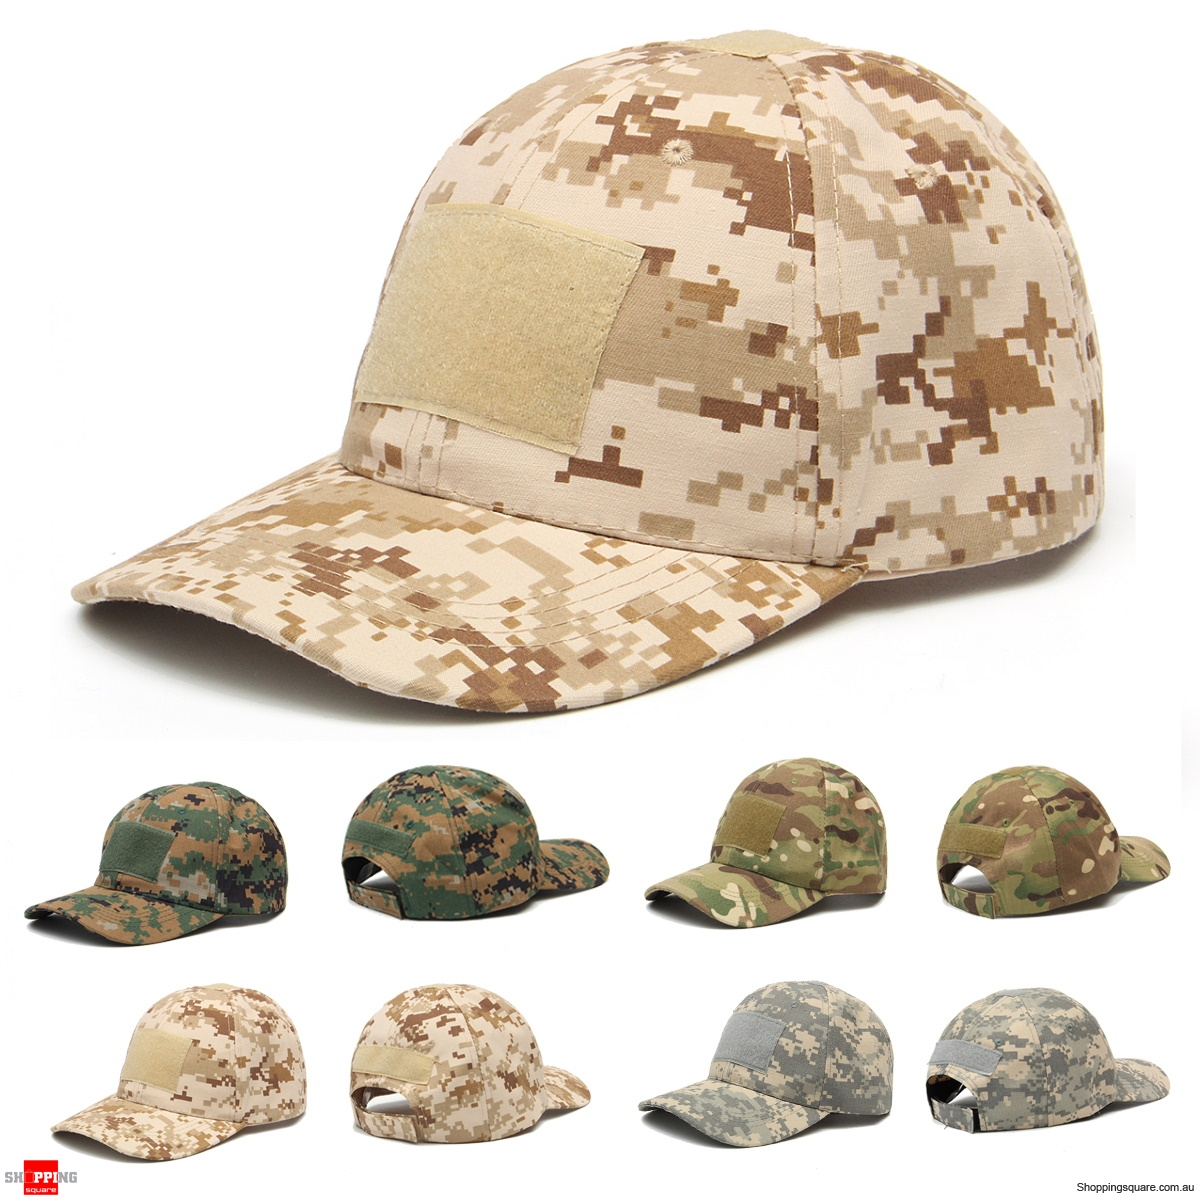 Adjustable Camping Tactical Camouflage Travel Sunscreen Baseball Cap - Desert Camo Jungle